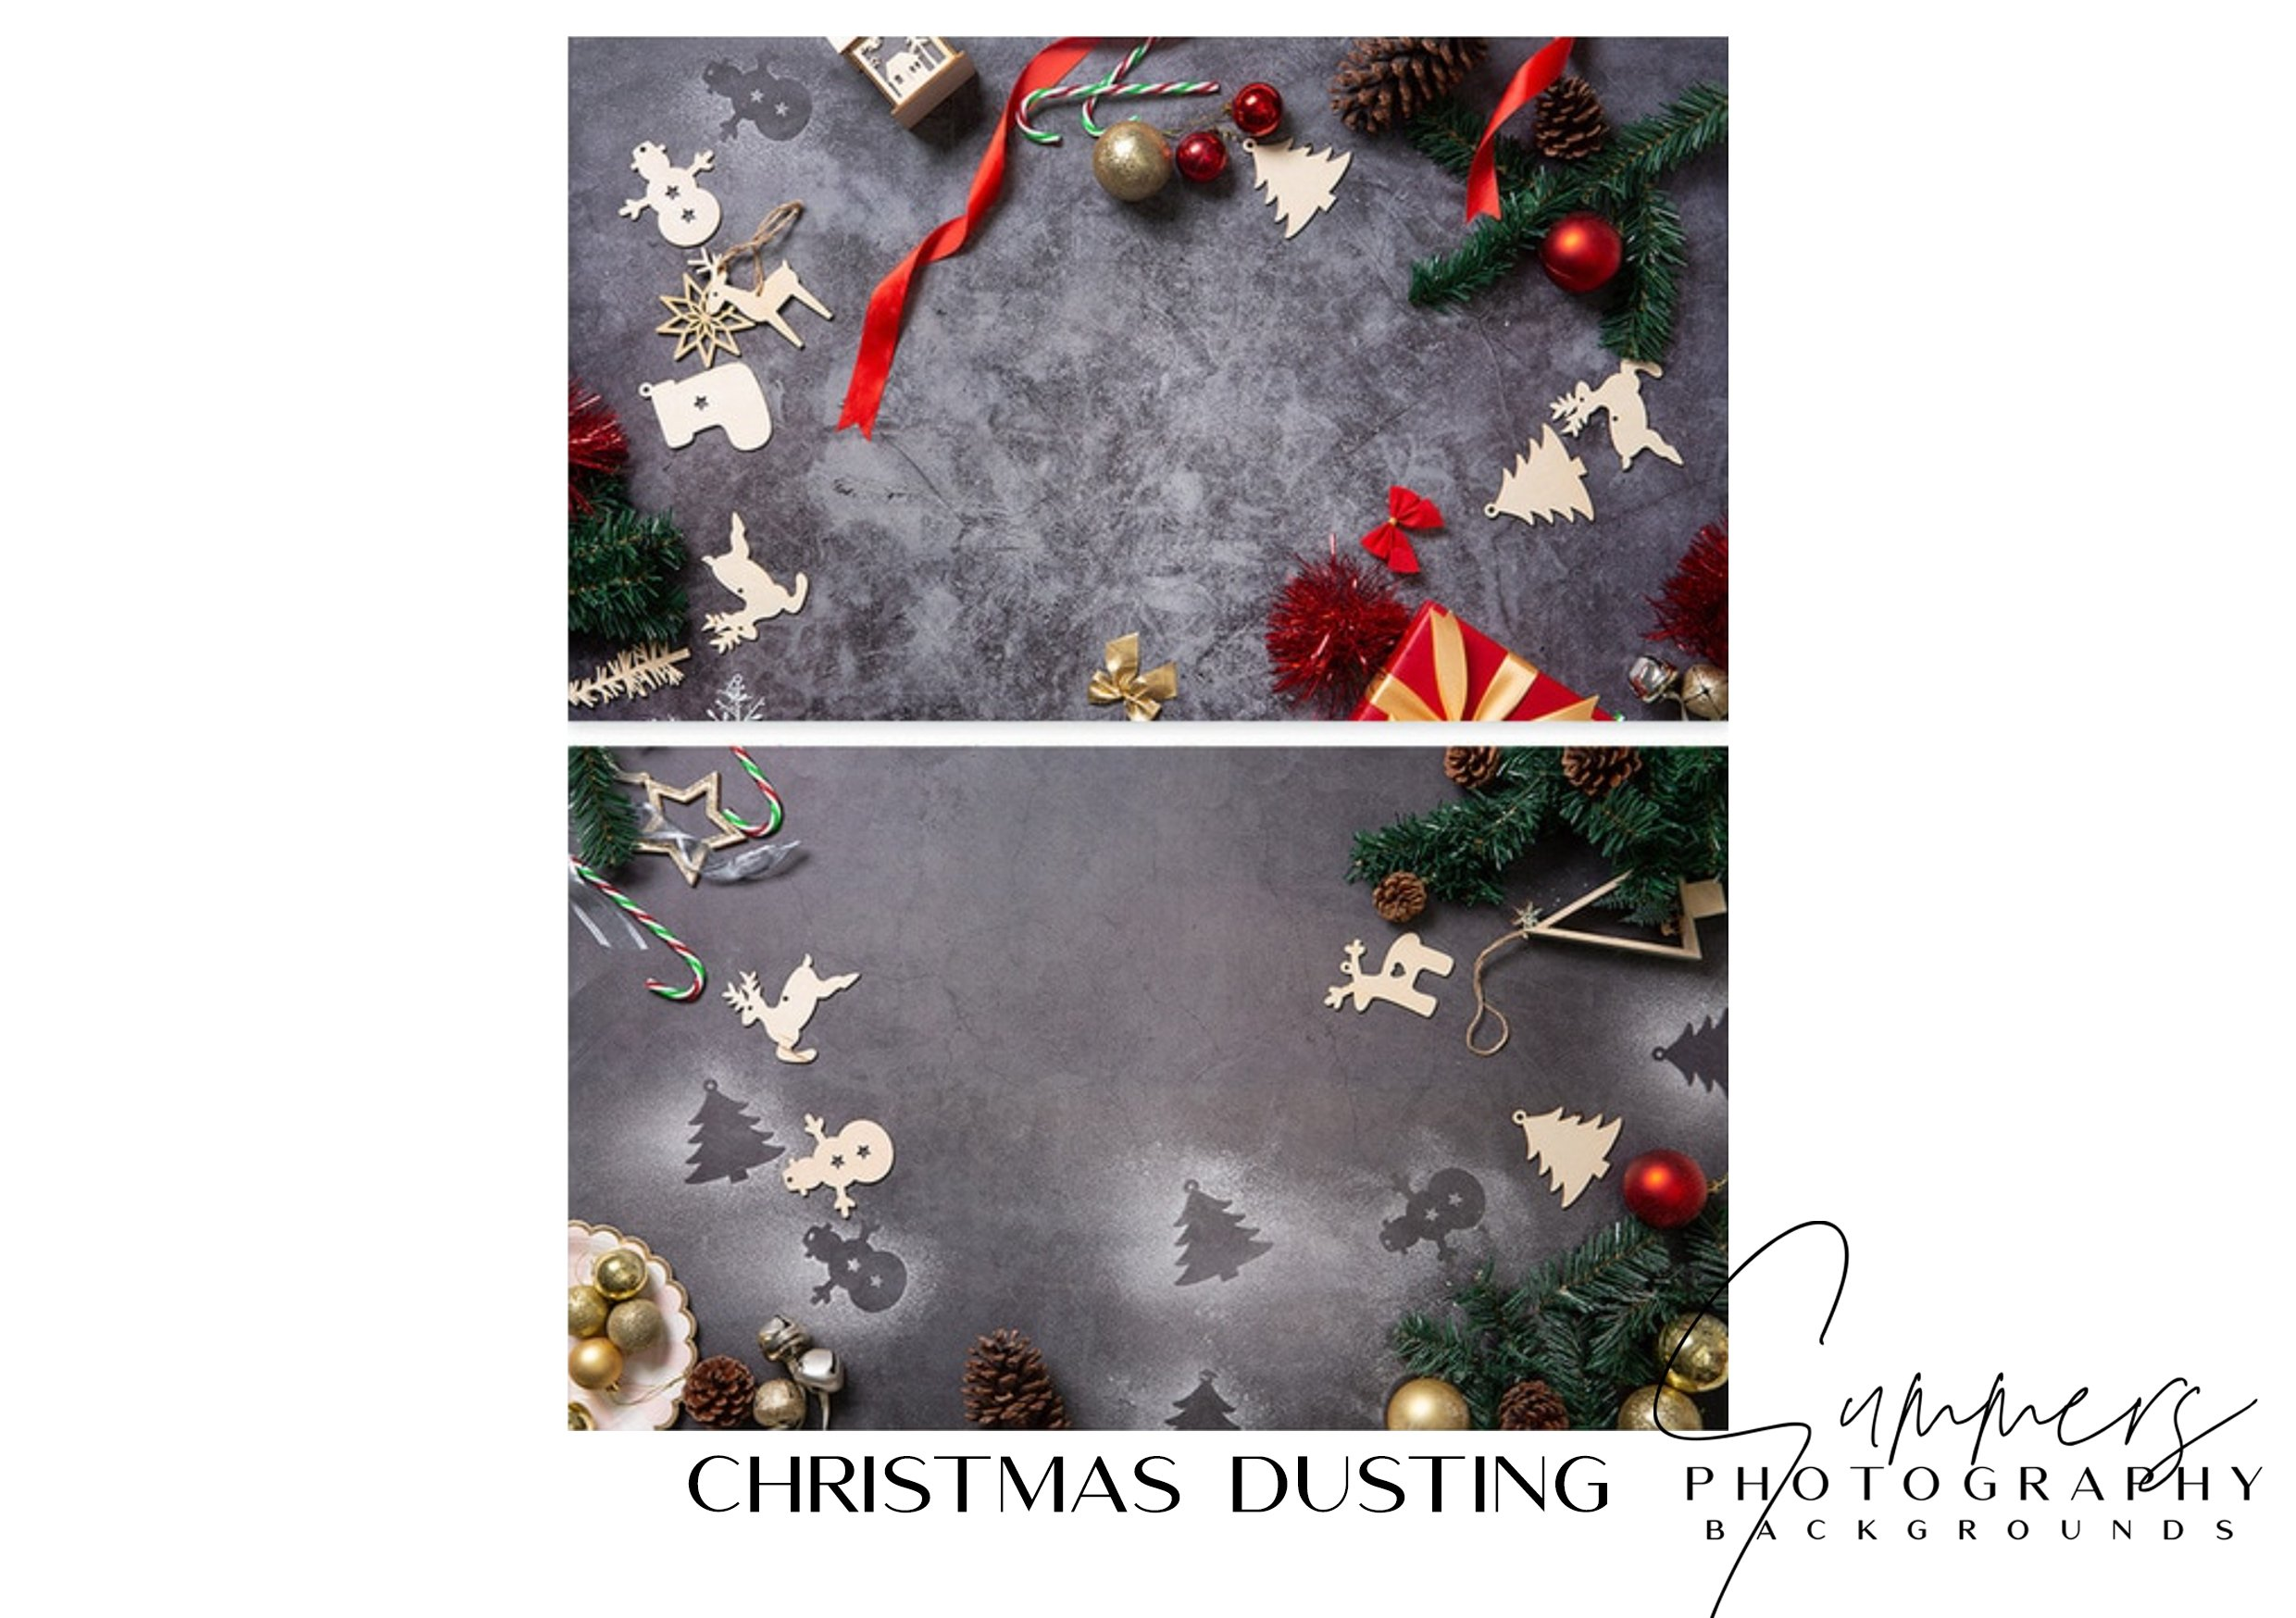 Photography Backgrounds Christmas Dusting